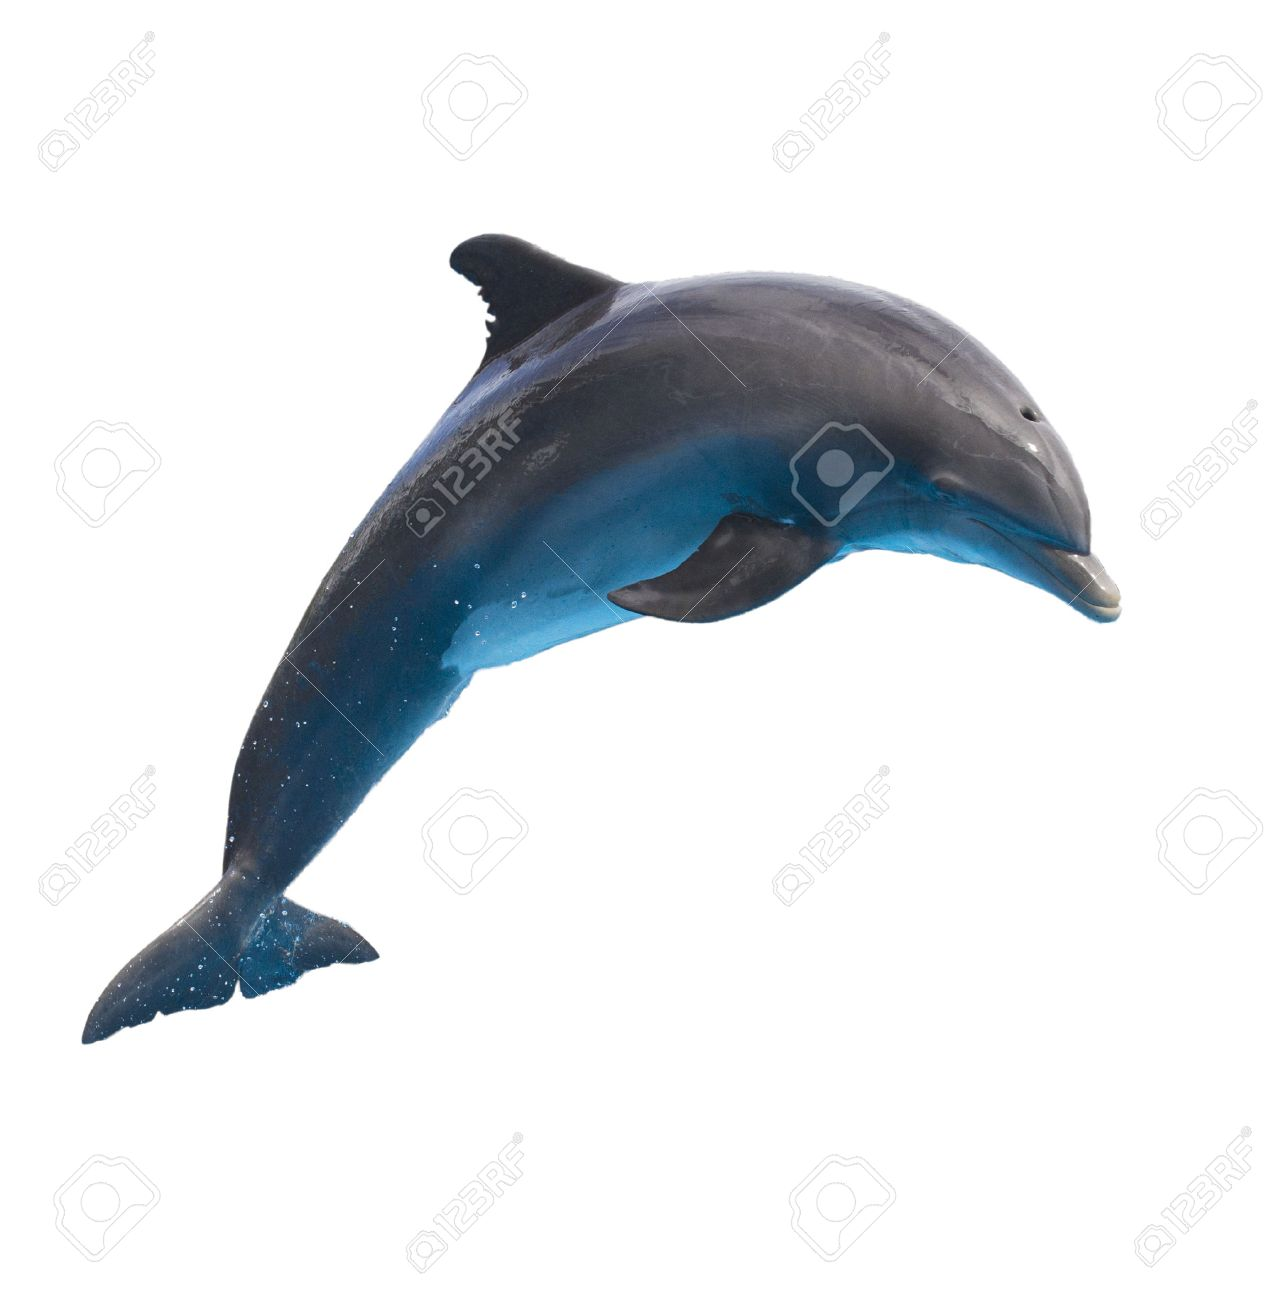 dolphin images u0026 stock pictures royalty free dolphin photos and